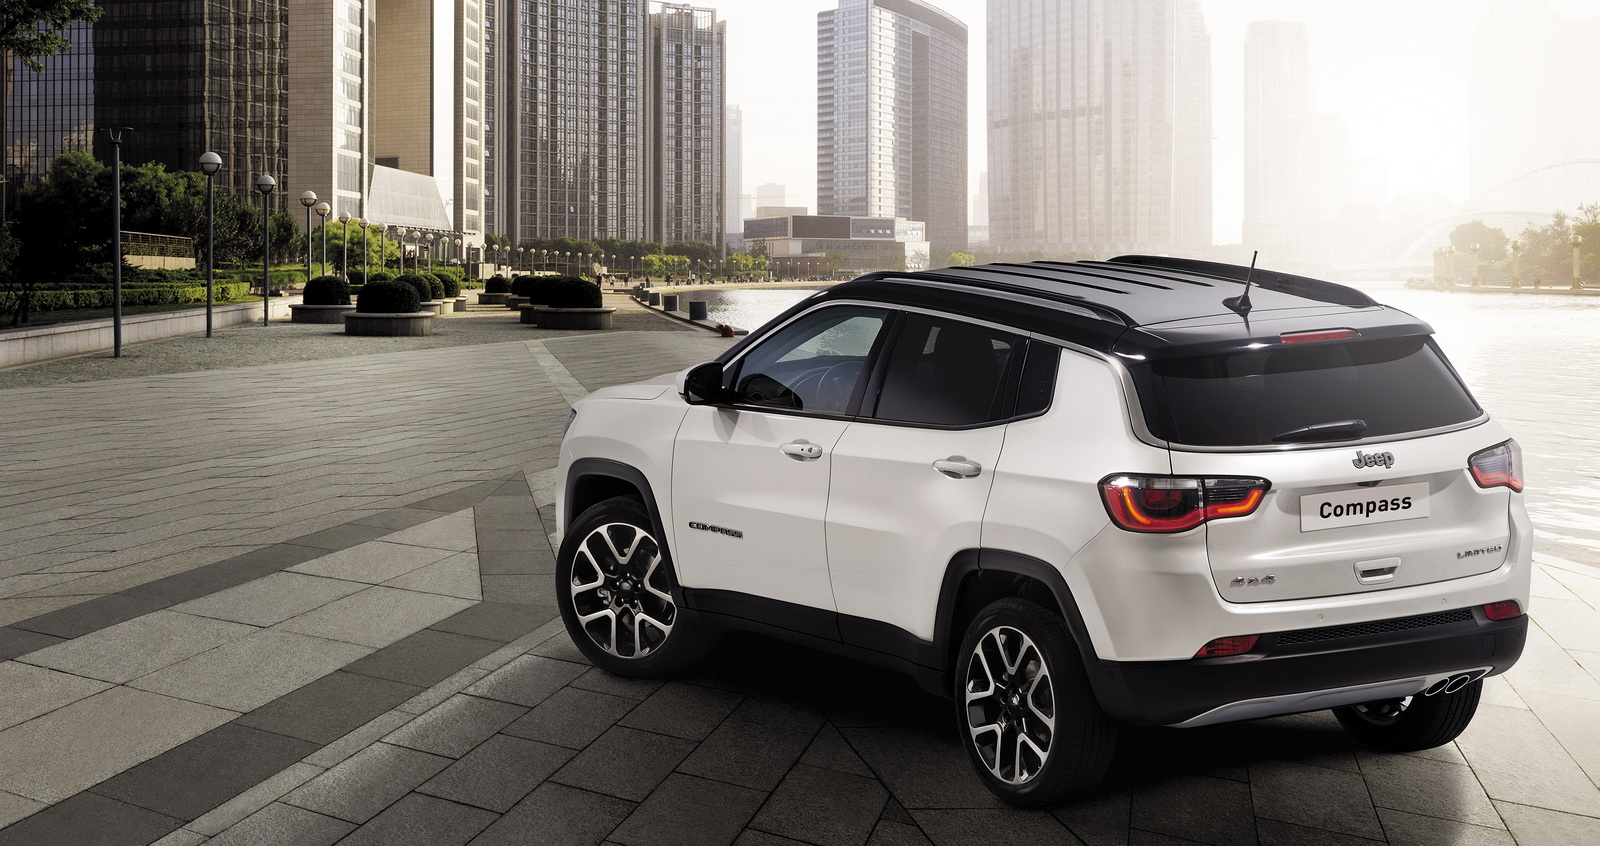 new jeep compass officially launched in europe 38 photos carscoops. Black Bedroom Furniture Sets. Home Design Ideas